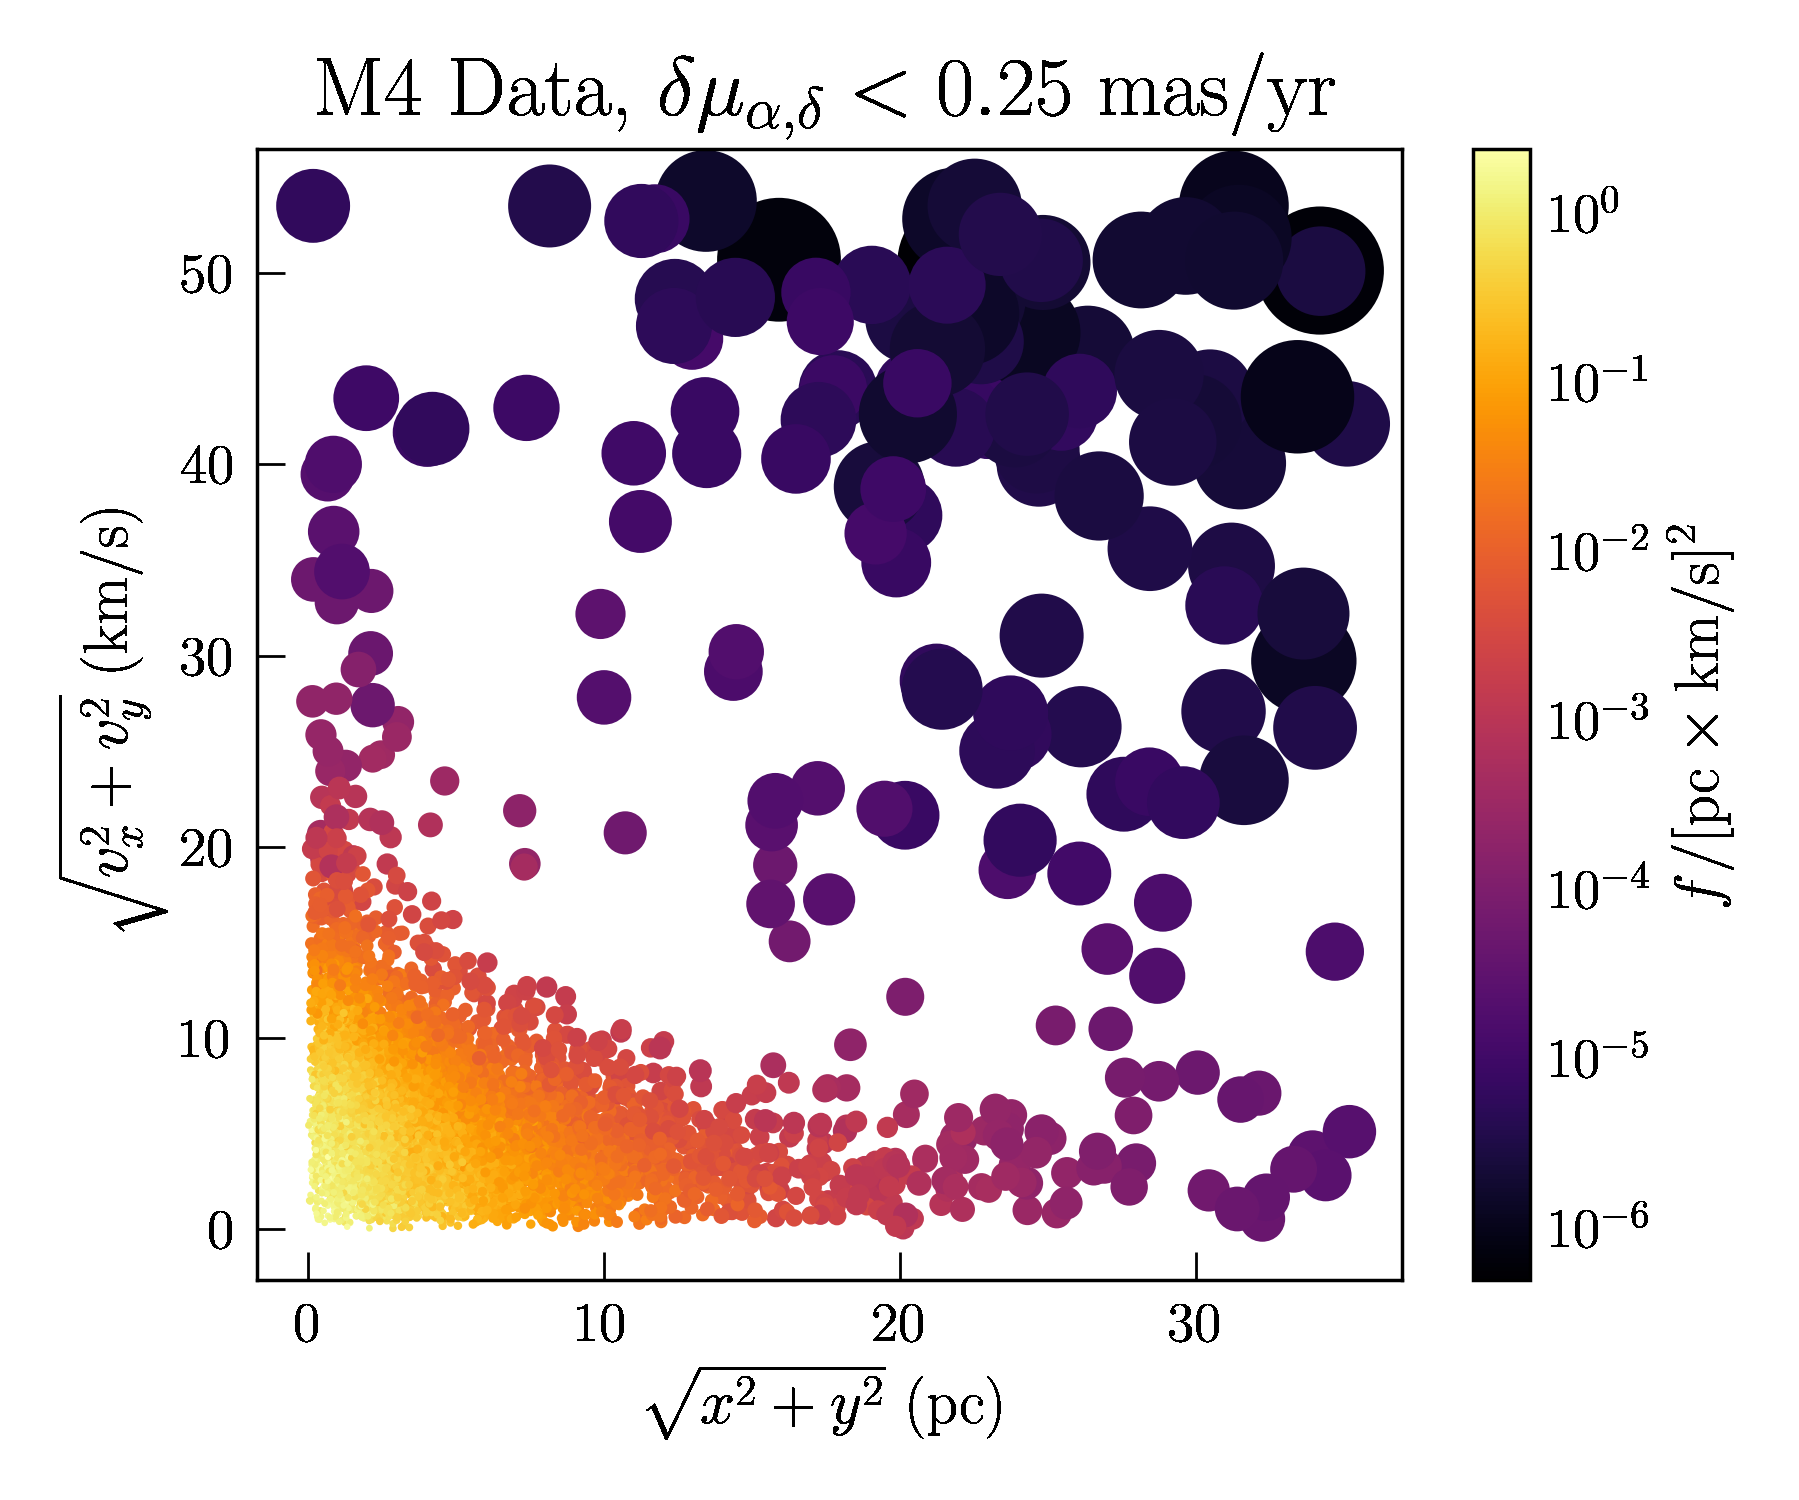 Stars in the Gaia data set for the M4 globular cluster after a cut on the stars with large errors. Color and size of each star represent the relative phase space-density (larger points are lower density).